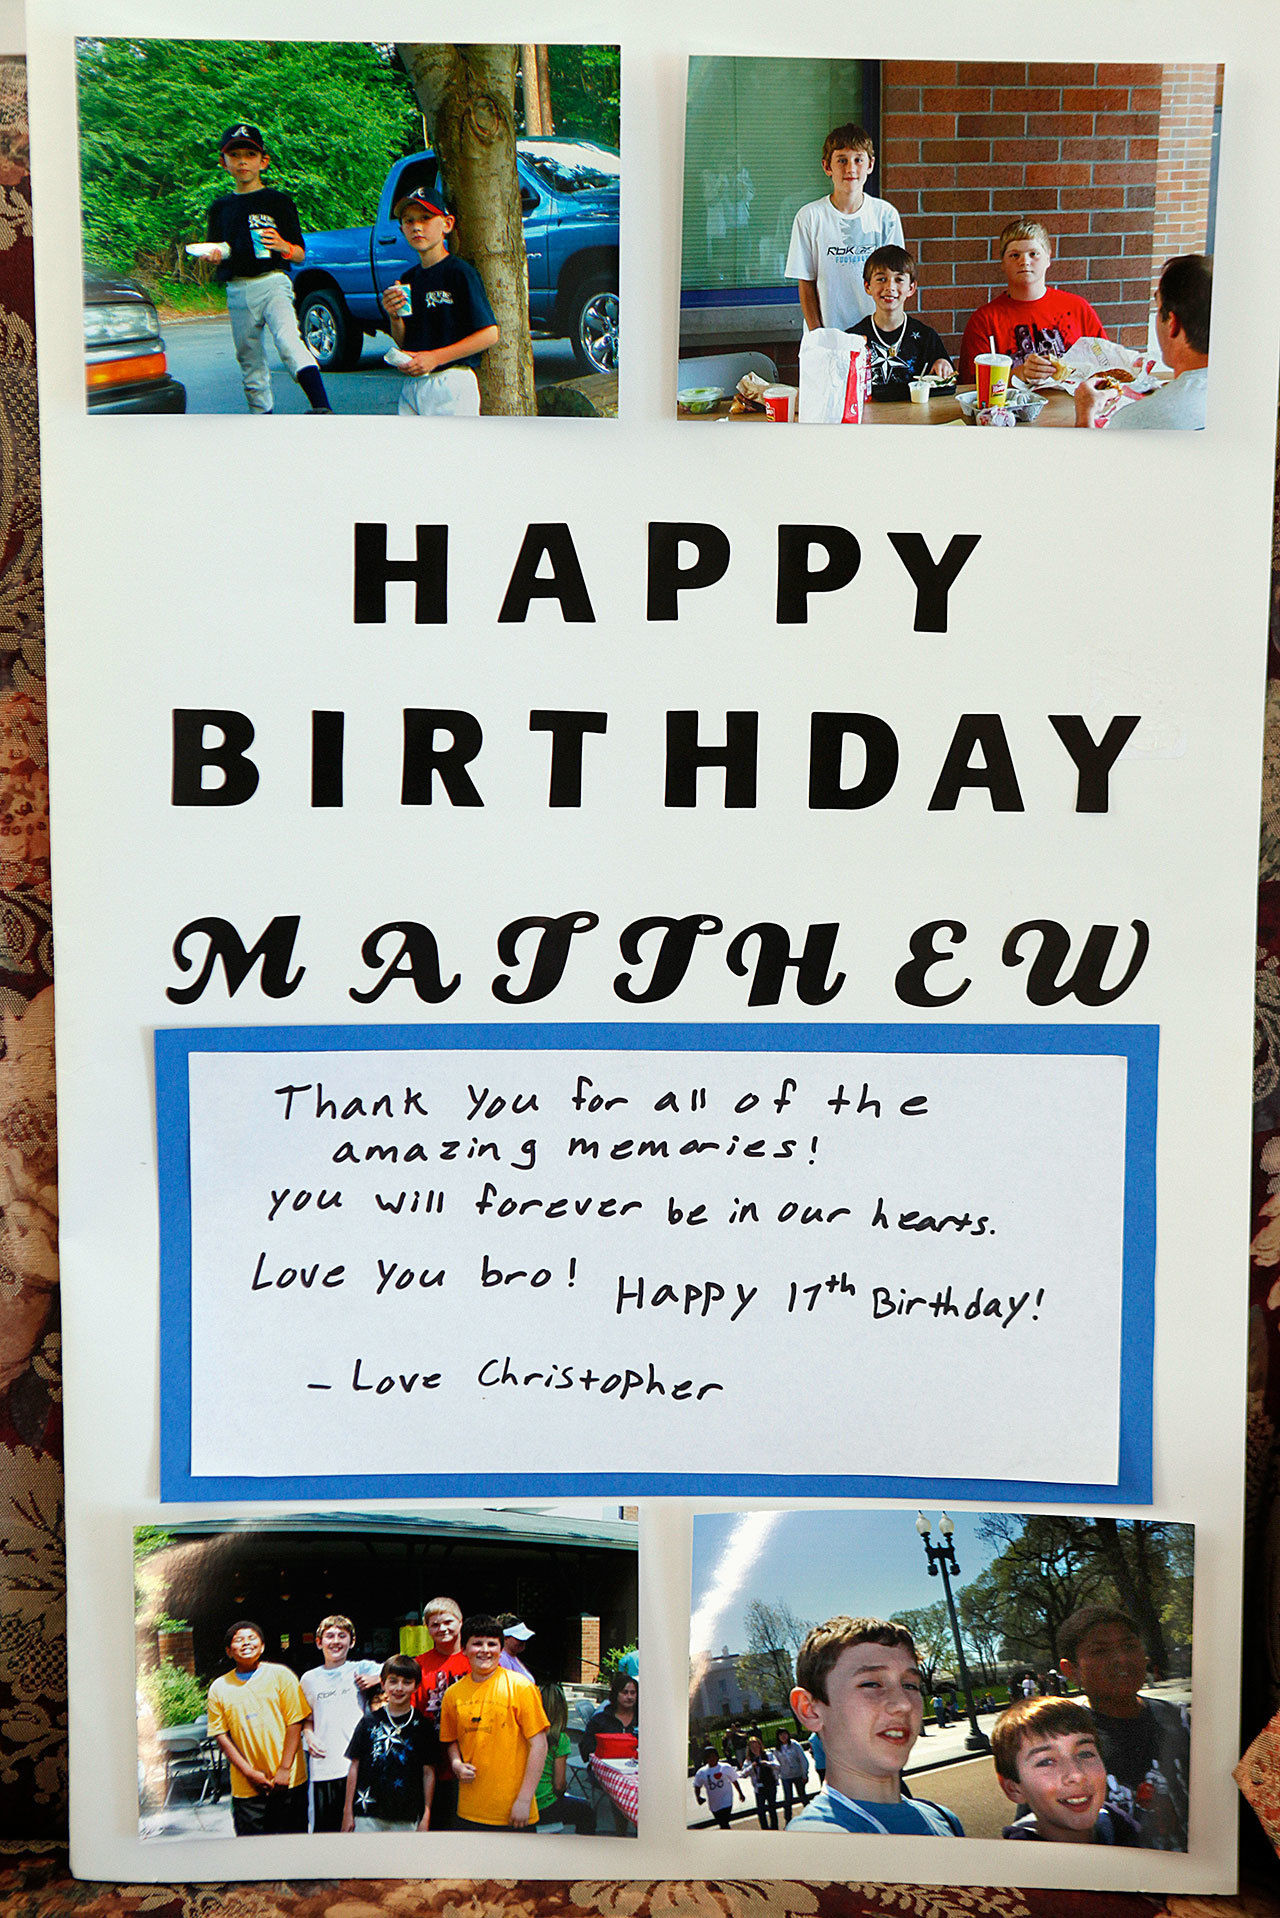 A birthday card made by friends of Matthew Truax, who died of hypertrophic cardiomyopathy in 2013, was displayed in the Truax's home shortly after his death. Matthew would have turned 20 this Sunday, September 18. (Genna Martin / Herald File)